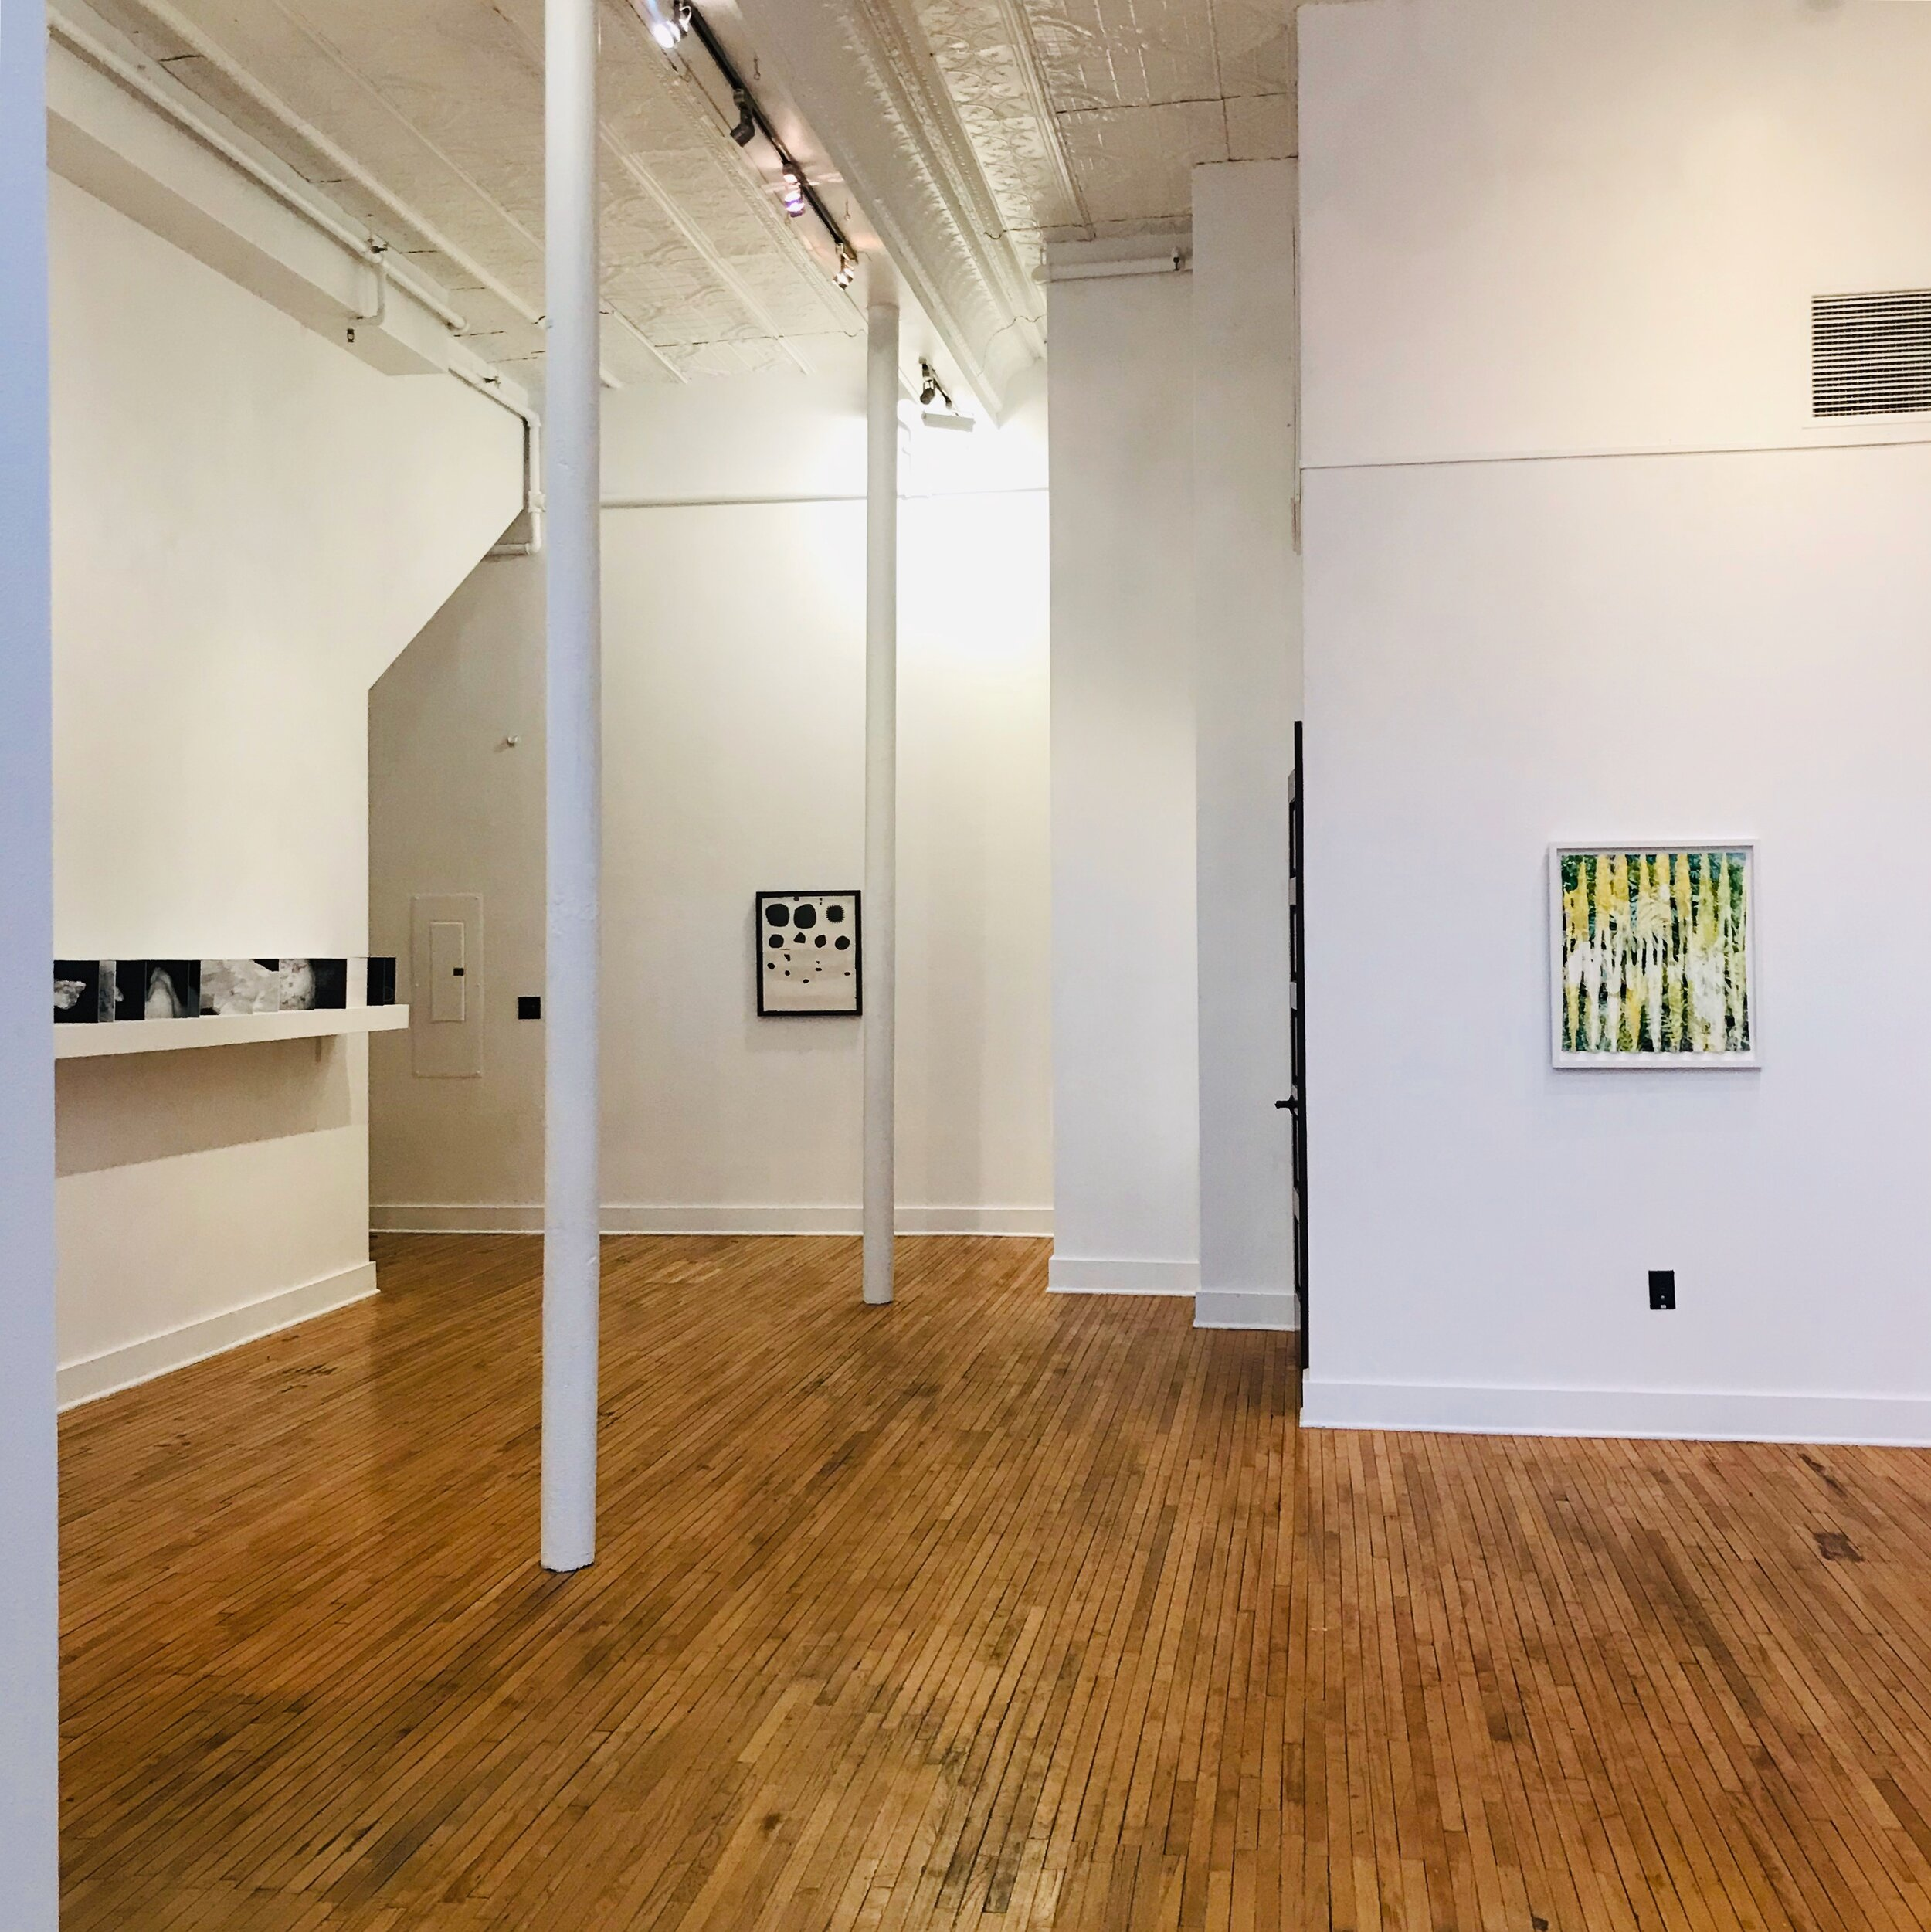 Marin Gallery has moved to Miami… changing and morphing into something new. Thank you Waterloo/Cedar Falls Iowa for your amazing support and memories. Thank you to the artists and everyone that came through our doors!  with Love,  Janice